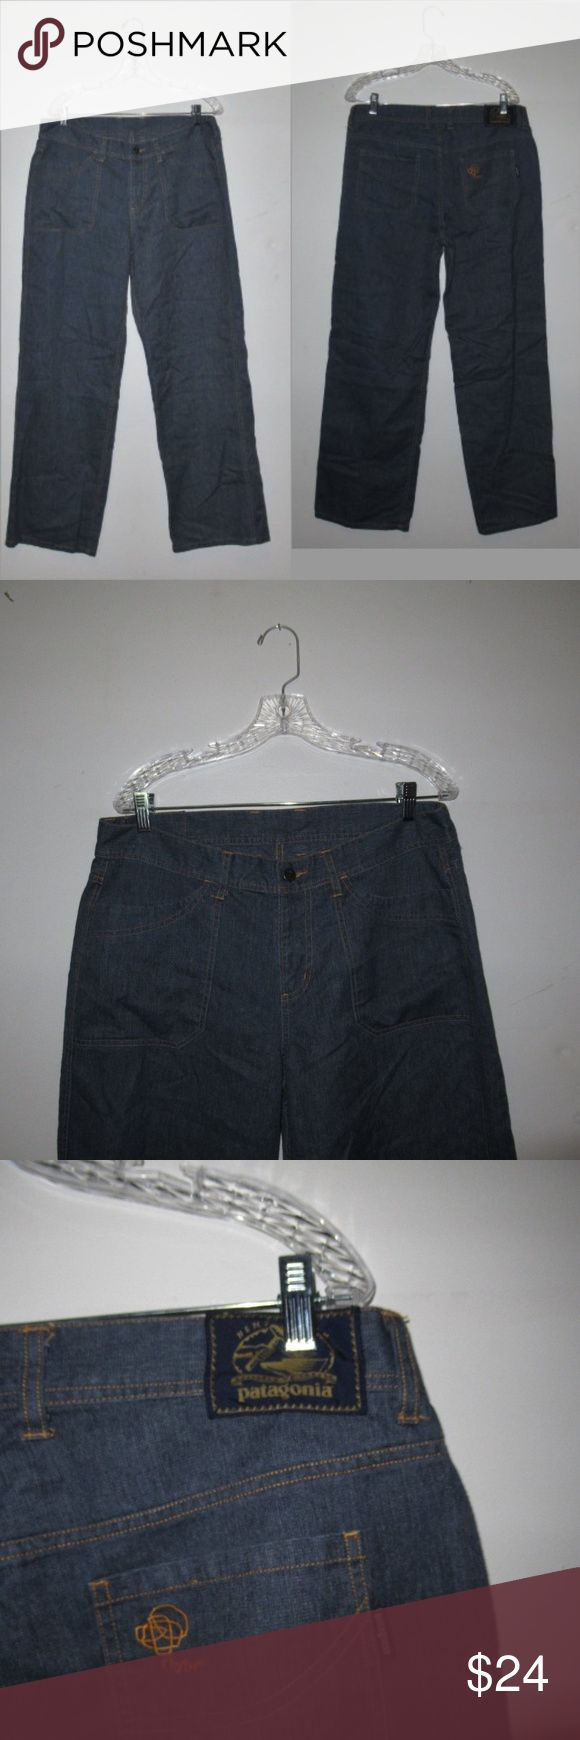 """Patagonia Jeans Women's Size 14  Flare Wide Leg Patagonia Jeans Women's Size 14  Flare Wide Leg Pants Waist: 35"""" Front Rise: 10.5"""" Inseam: 31"""" Very good condition,  Sizes listed are based on the item label.  Item fit and sizing can vary by Manufacturer (P) Patagonia Jeans Flare & Wide Leg"""